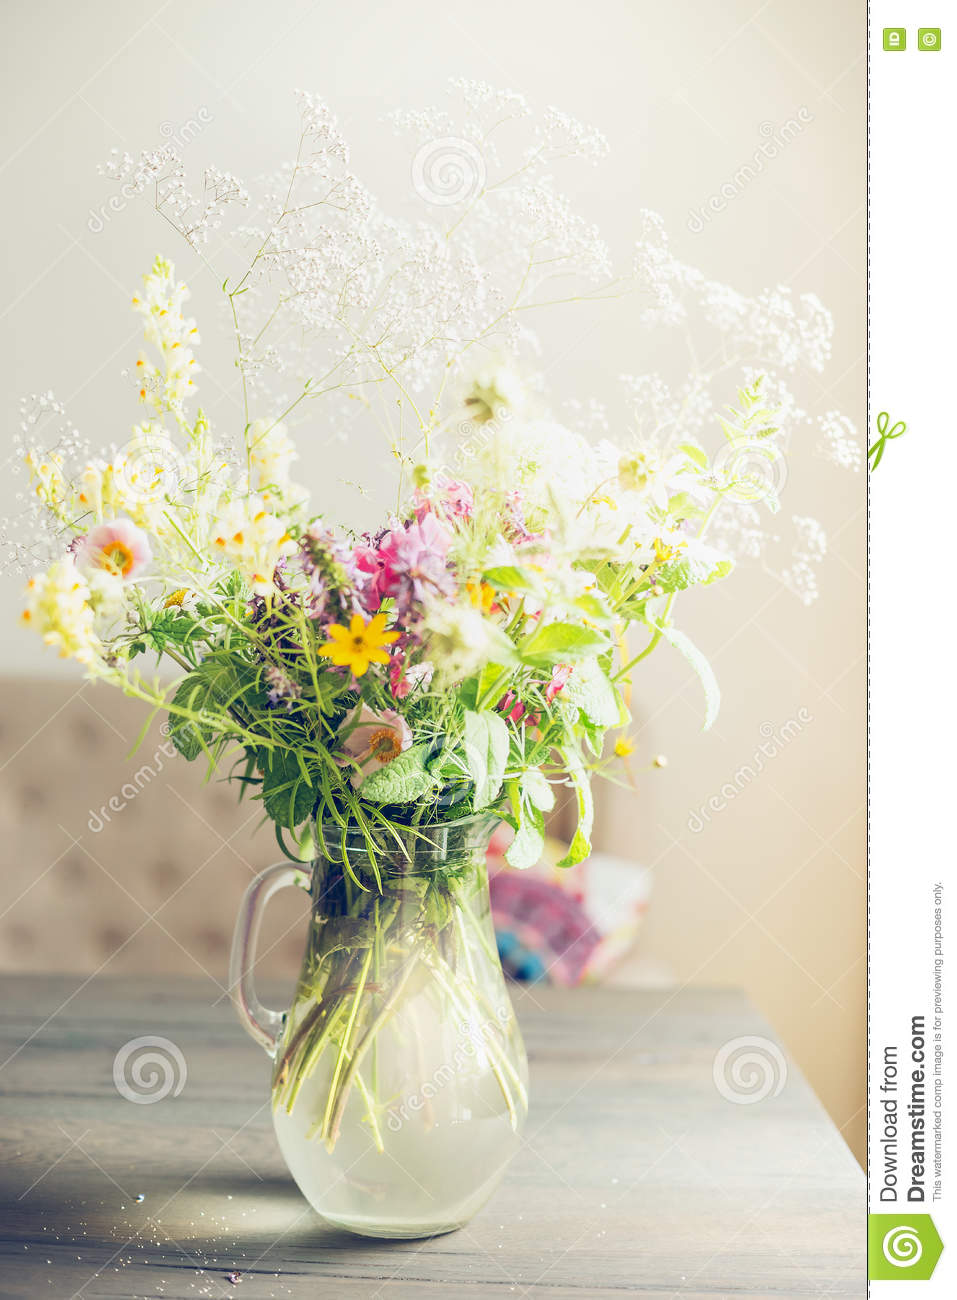 Lovely summer flowers Bouquet on table in light living room. Home